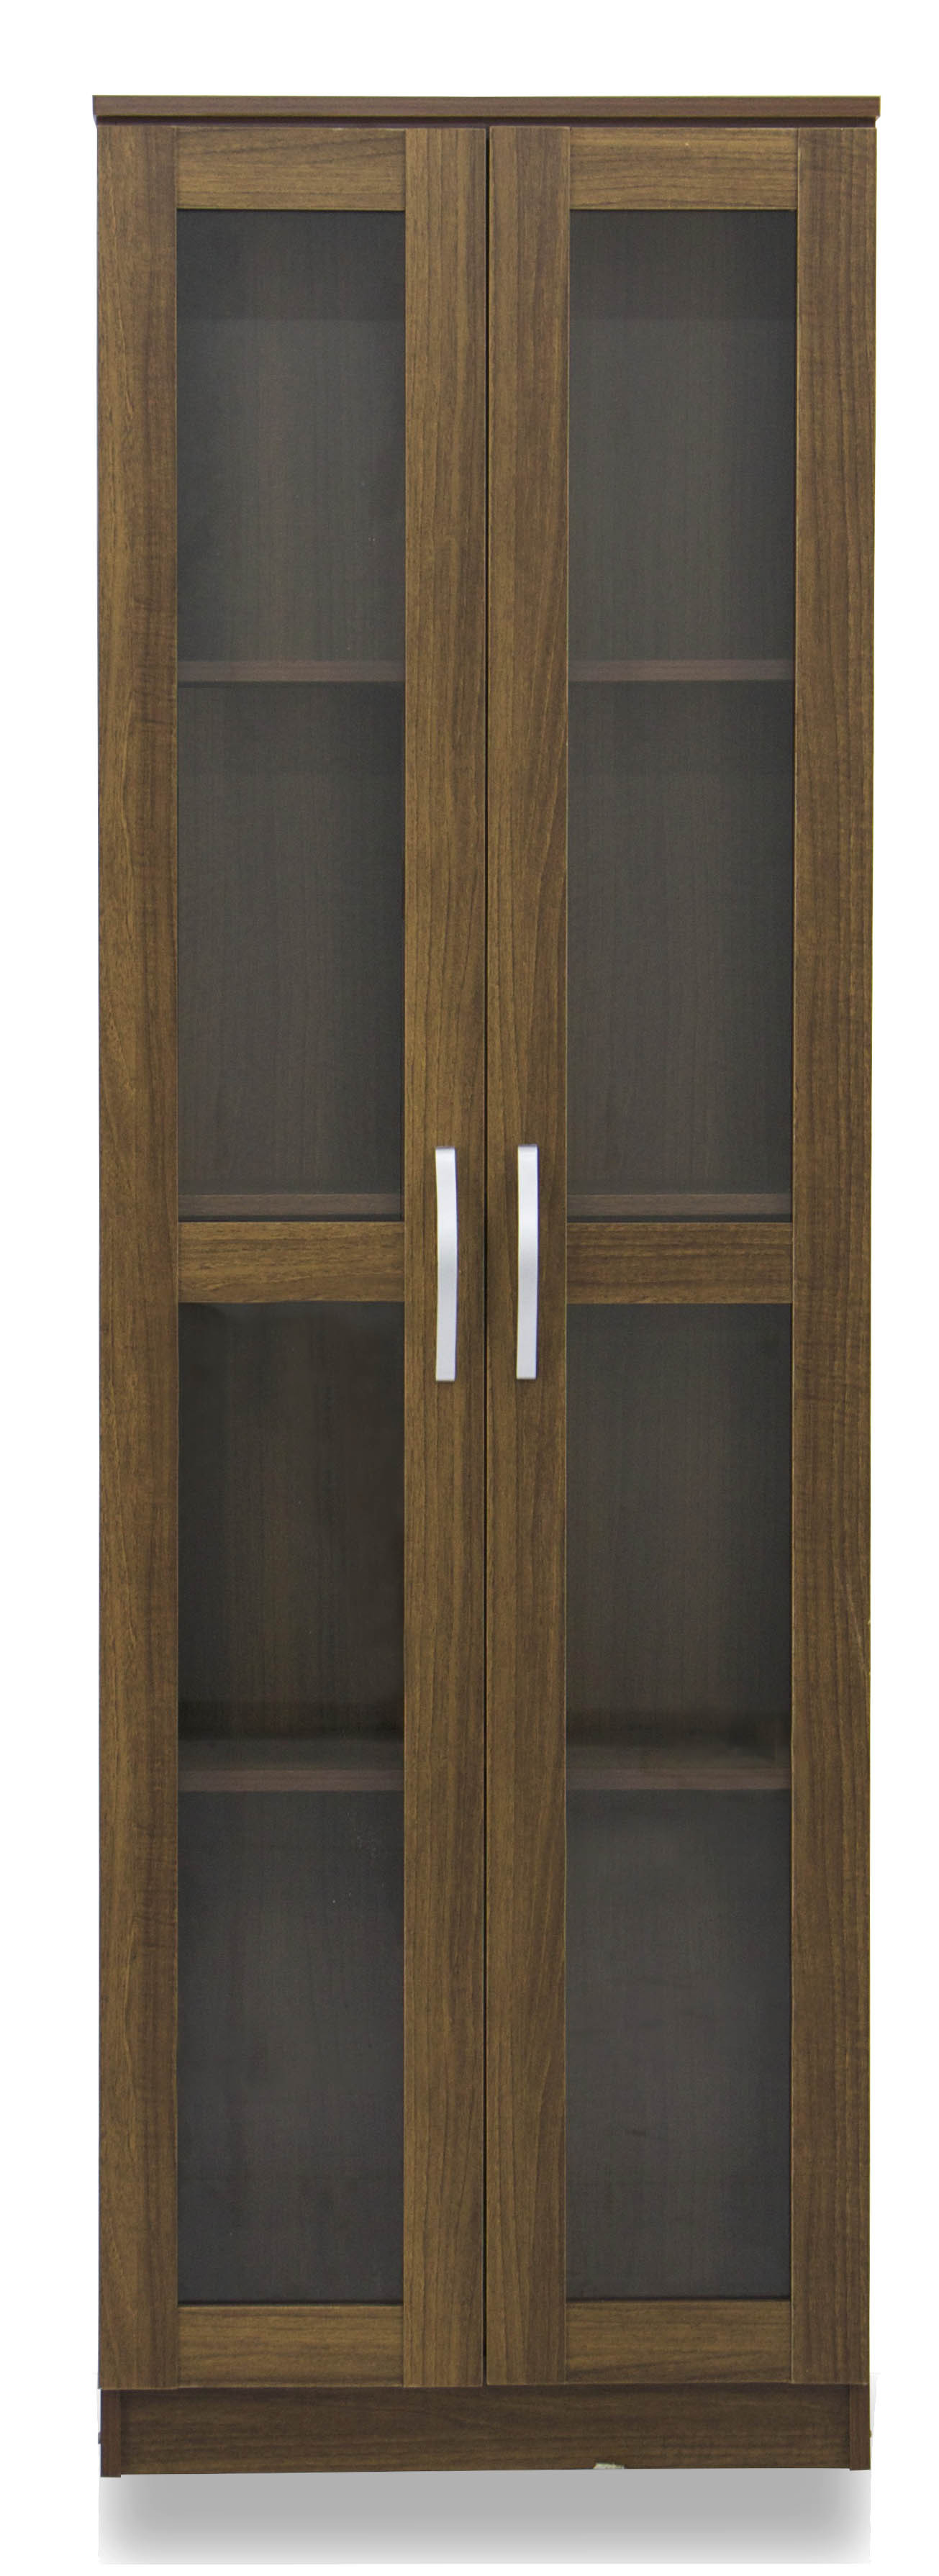 wardrobe and mirrored elegant armoire ikea sliding luxury closet graphics cheap doors cabinets shelves with door cabinet storage of